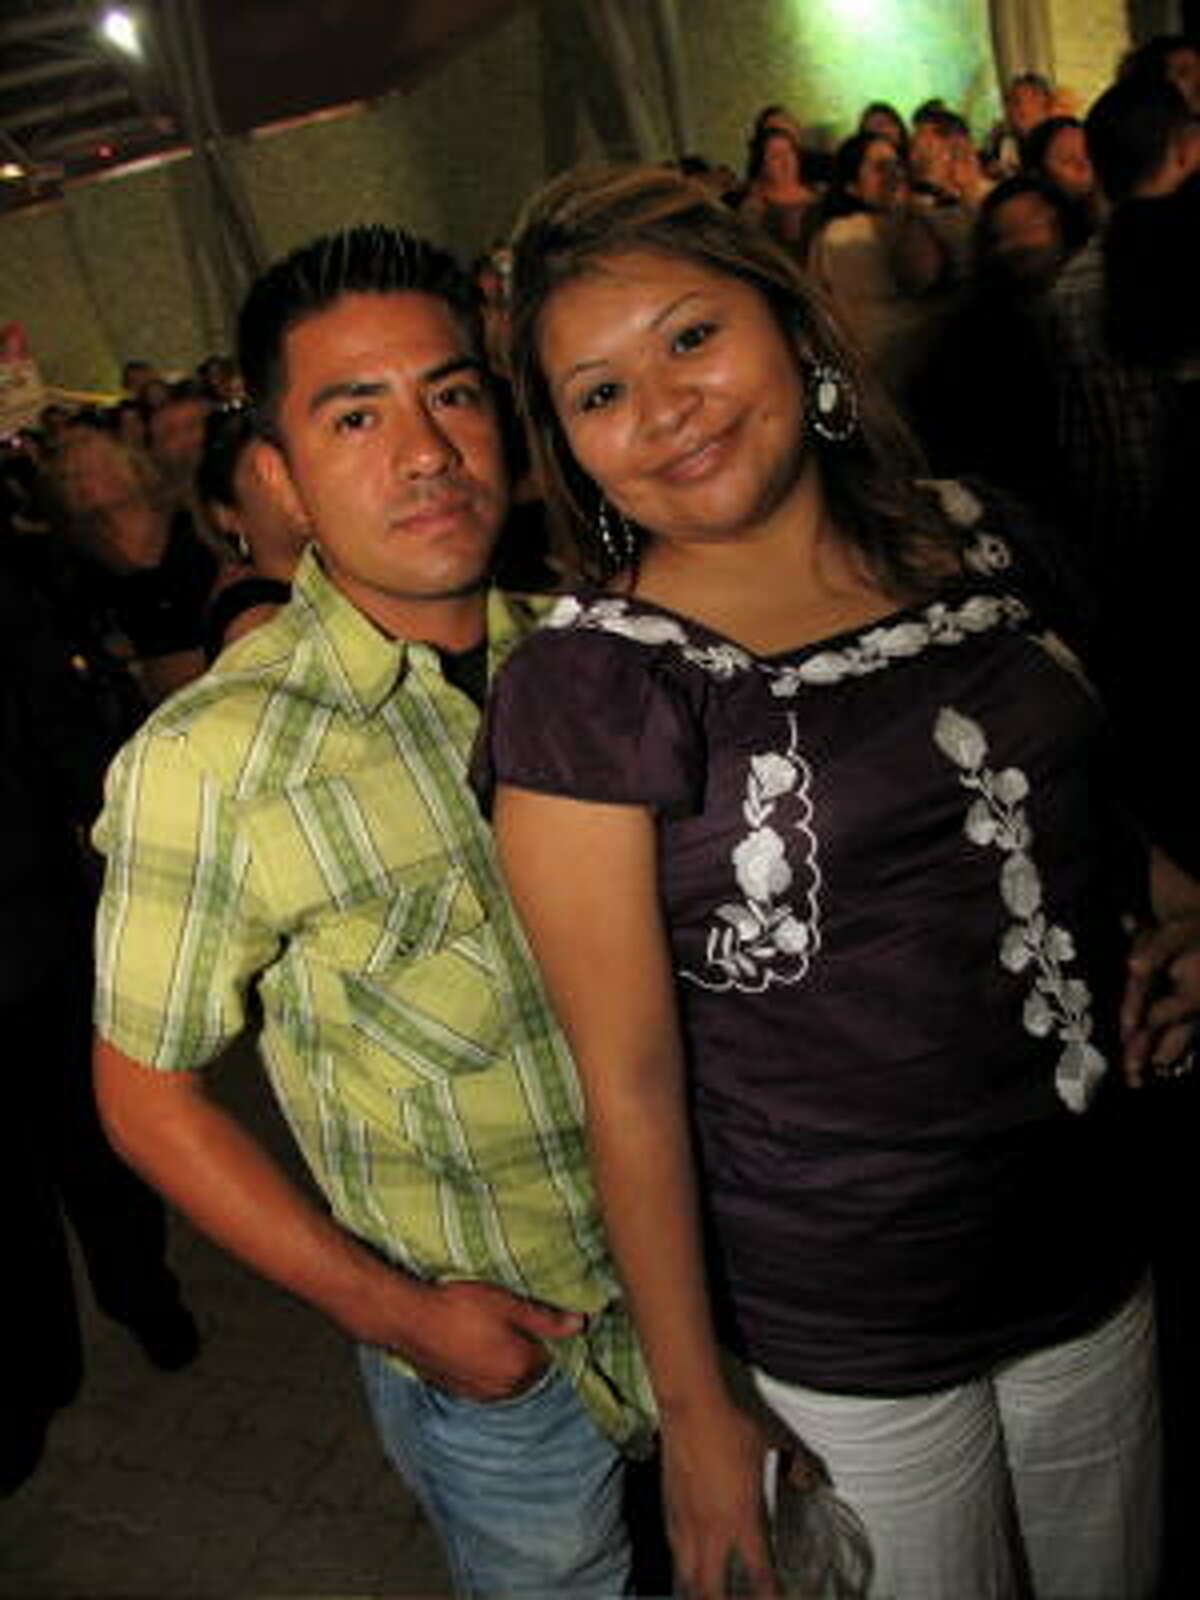 Oscar Hernandez, left, and JoAnn Vasquez